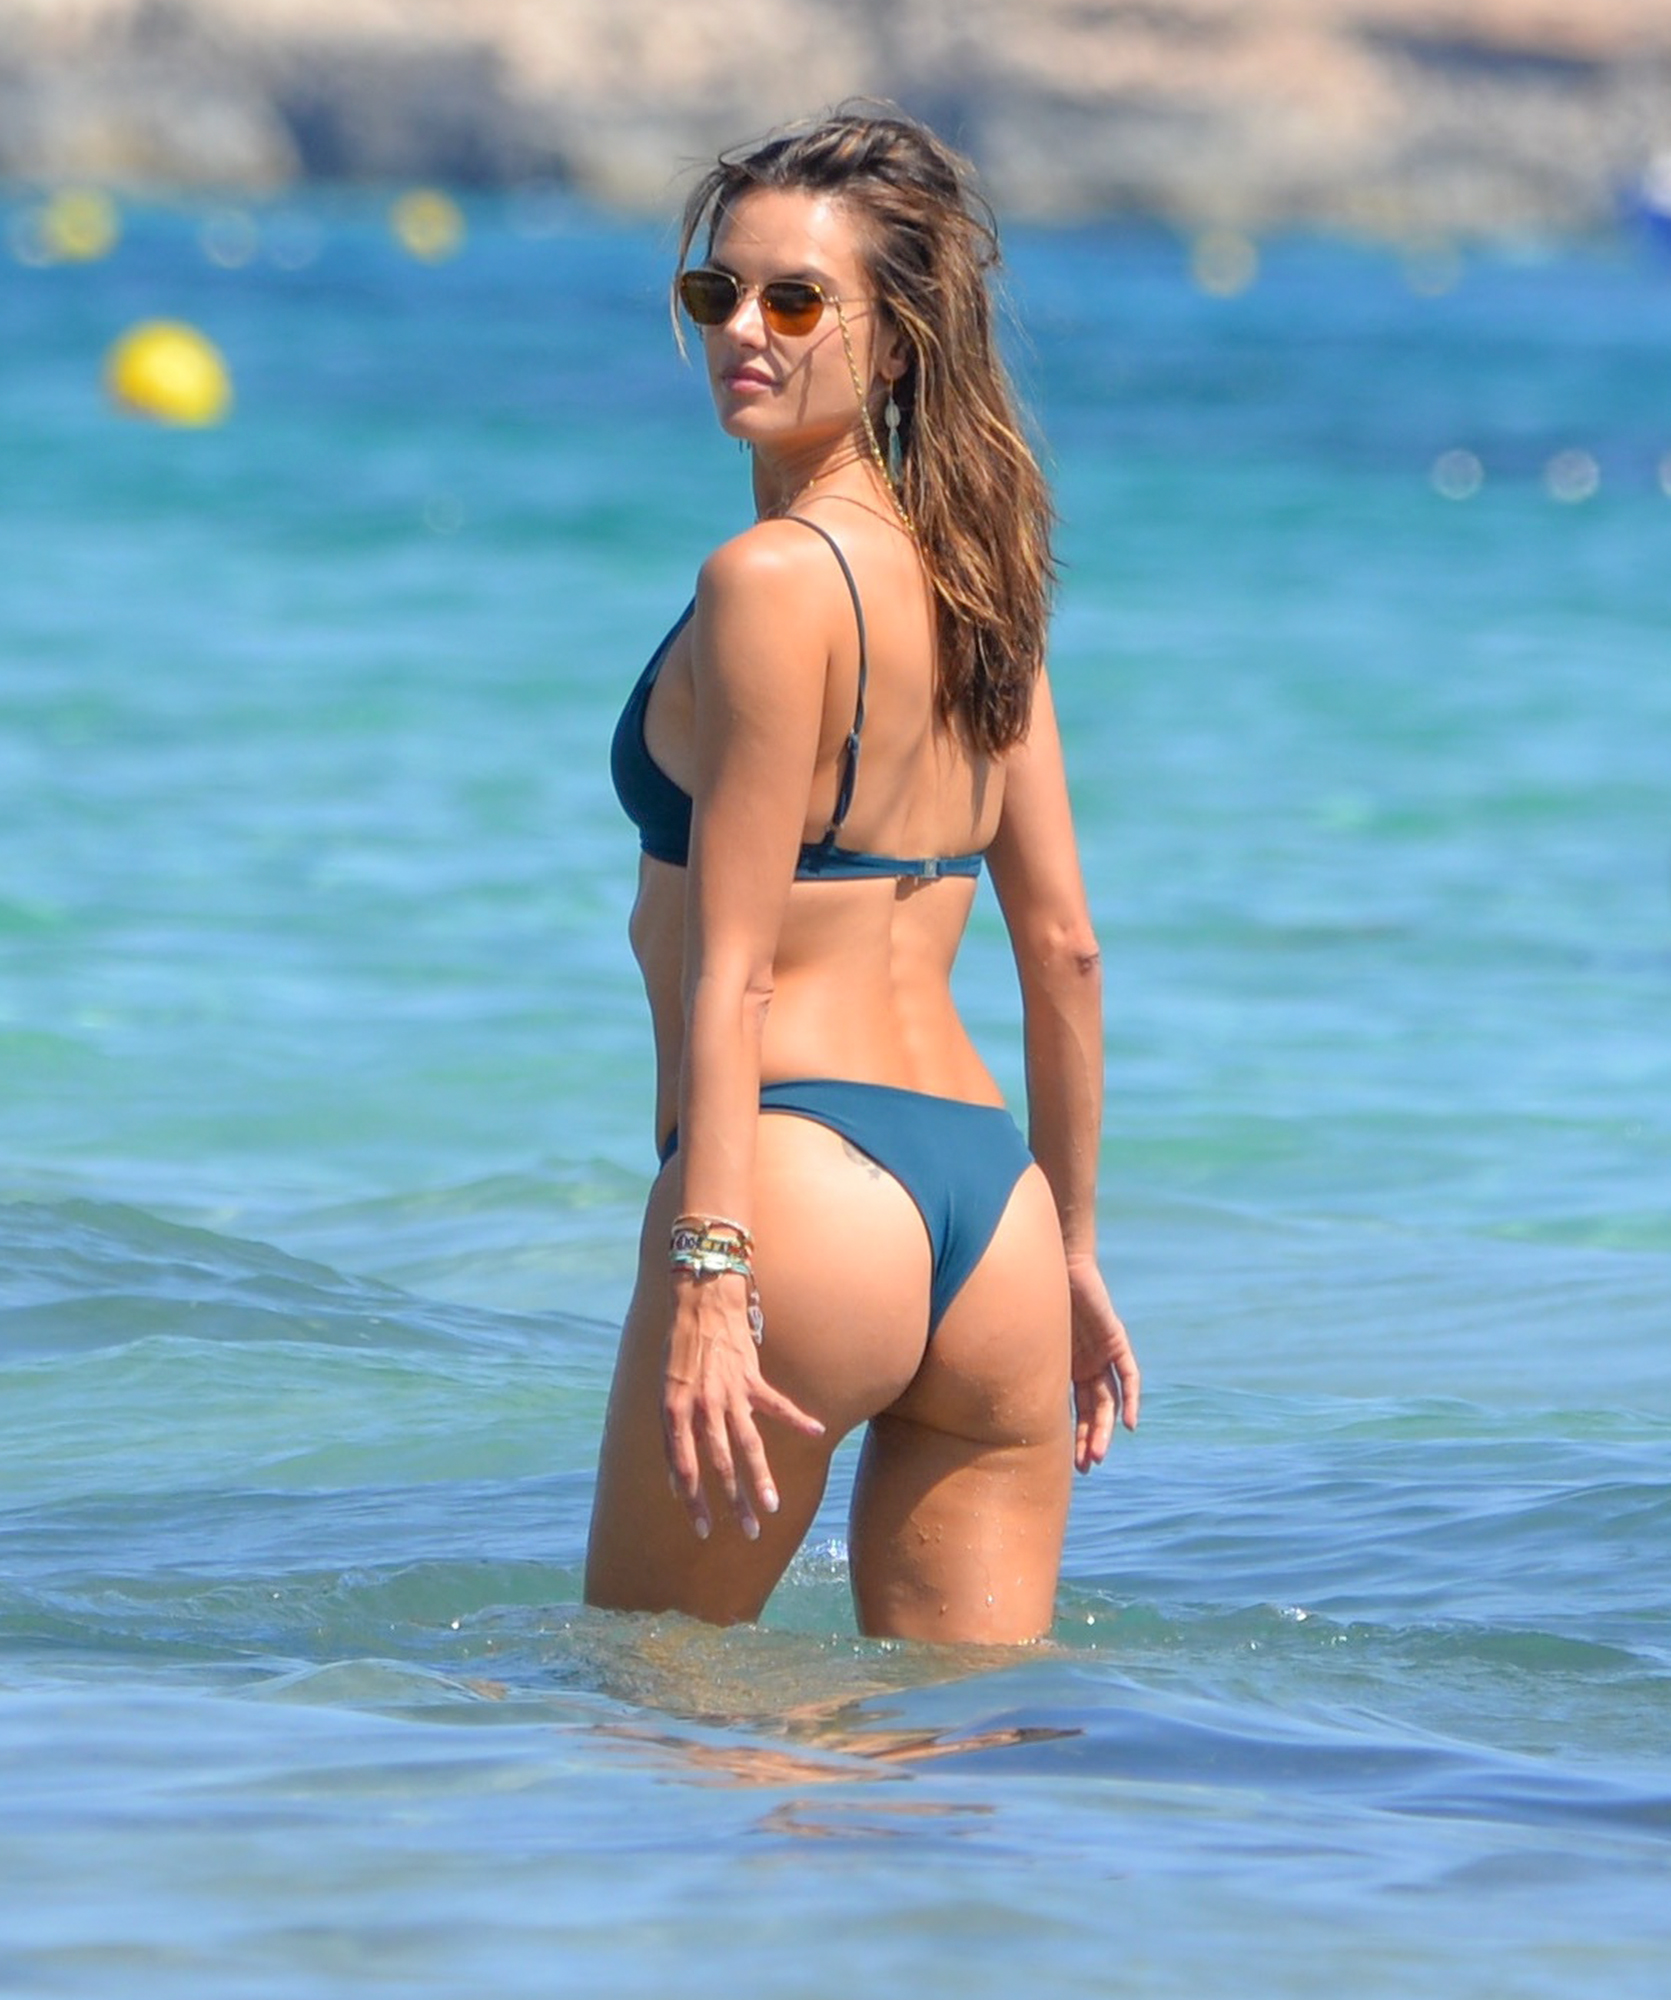 Supermodel Alessandra Ambrosio shows off her rock hard abs and perky posterior in a tiny teal bikini on the beach in Ibiza